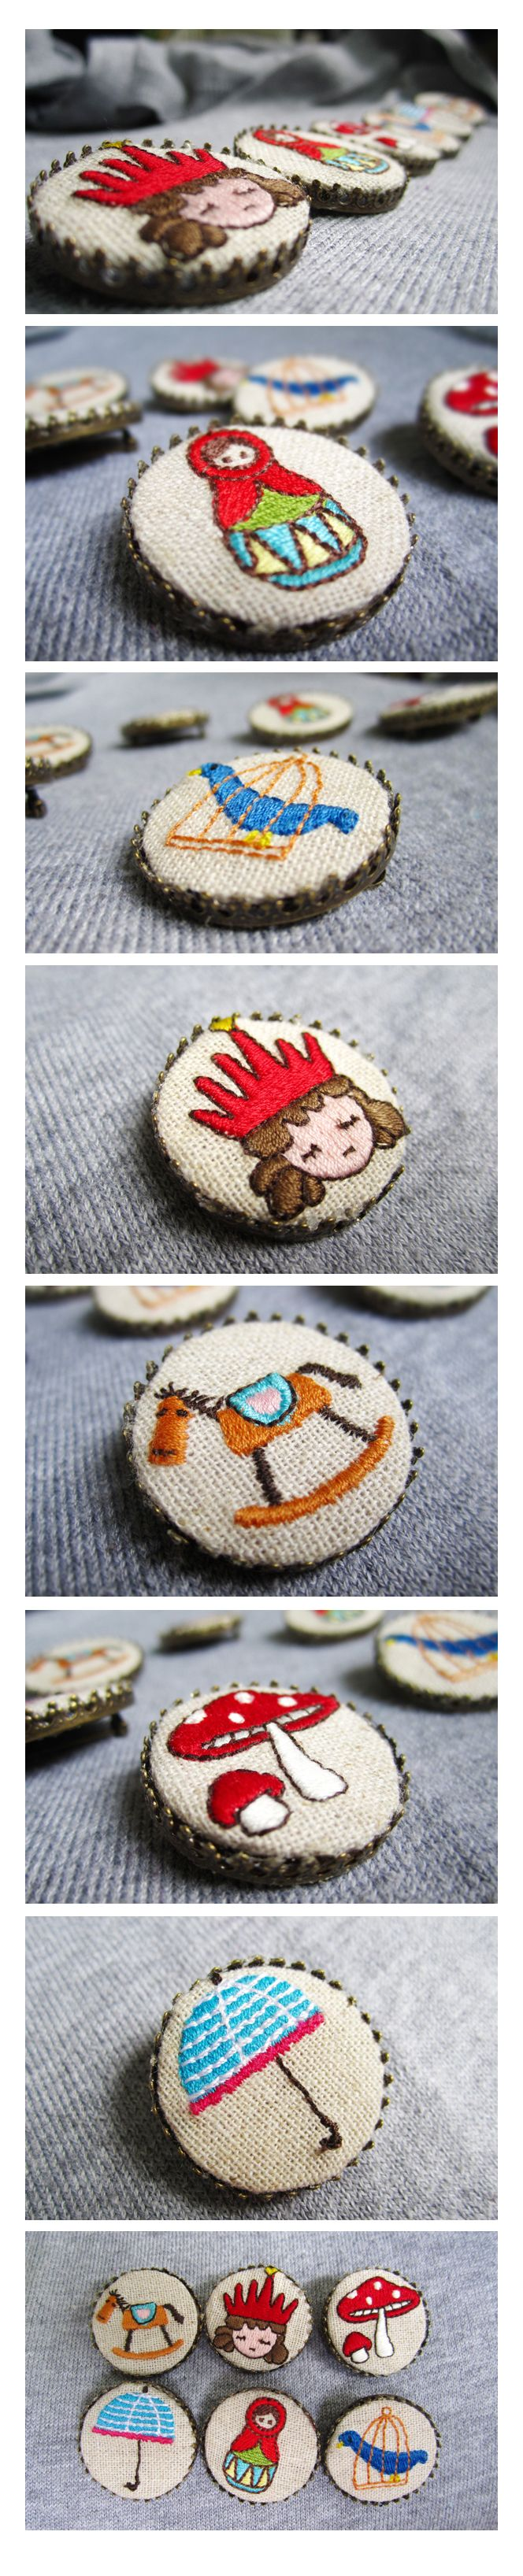 Tiny embroidery-- could you actually cover buttons like this and use them for embellished clothing, I wonder....